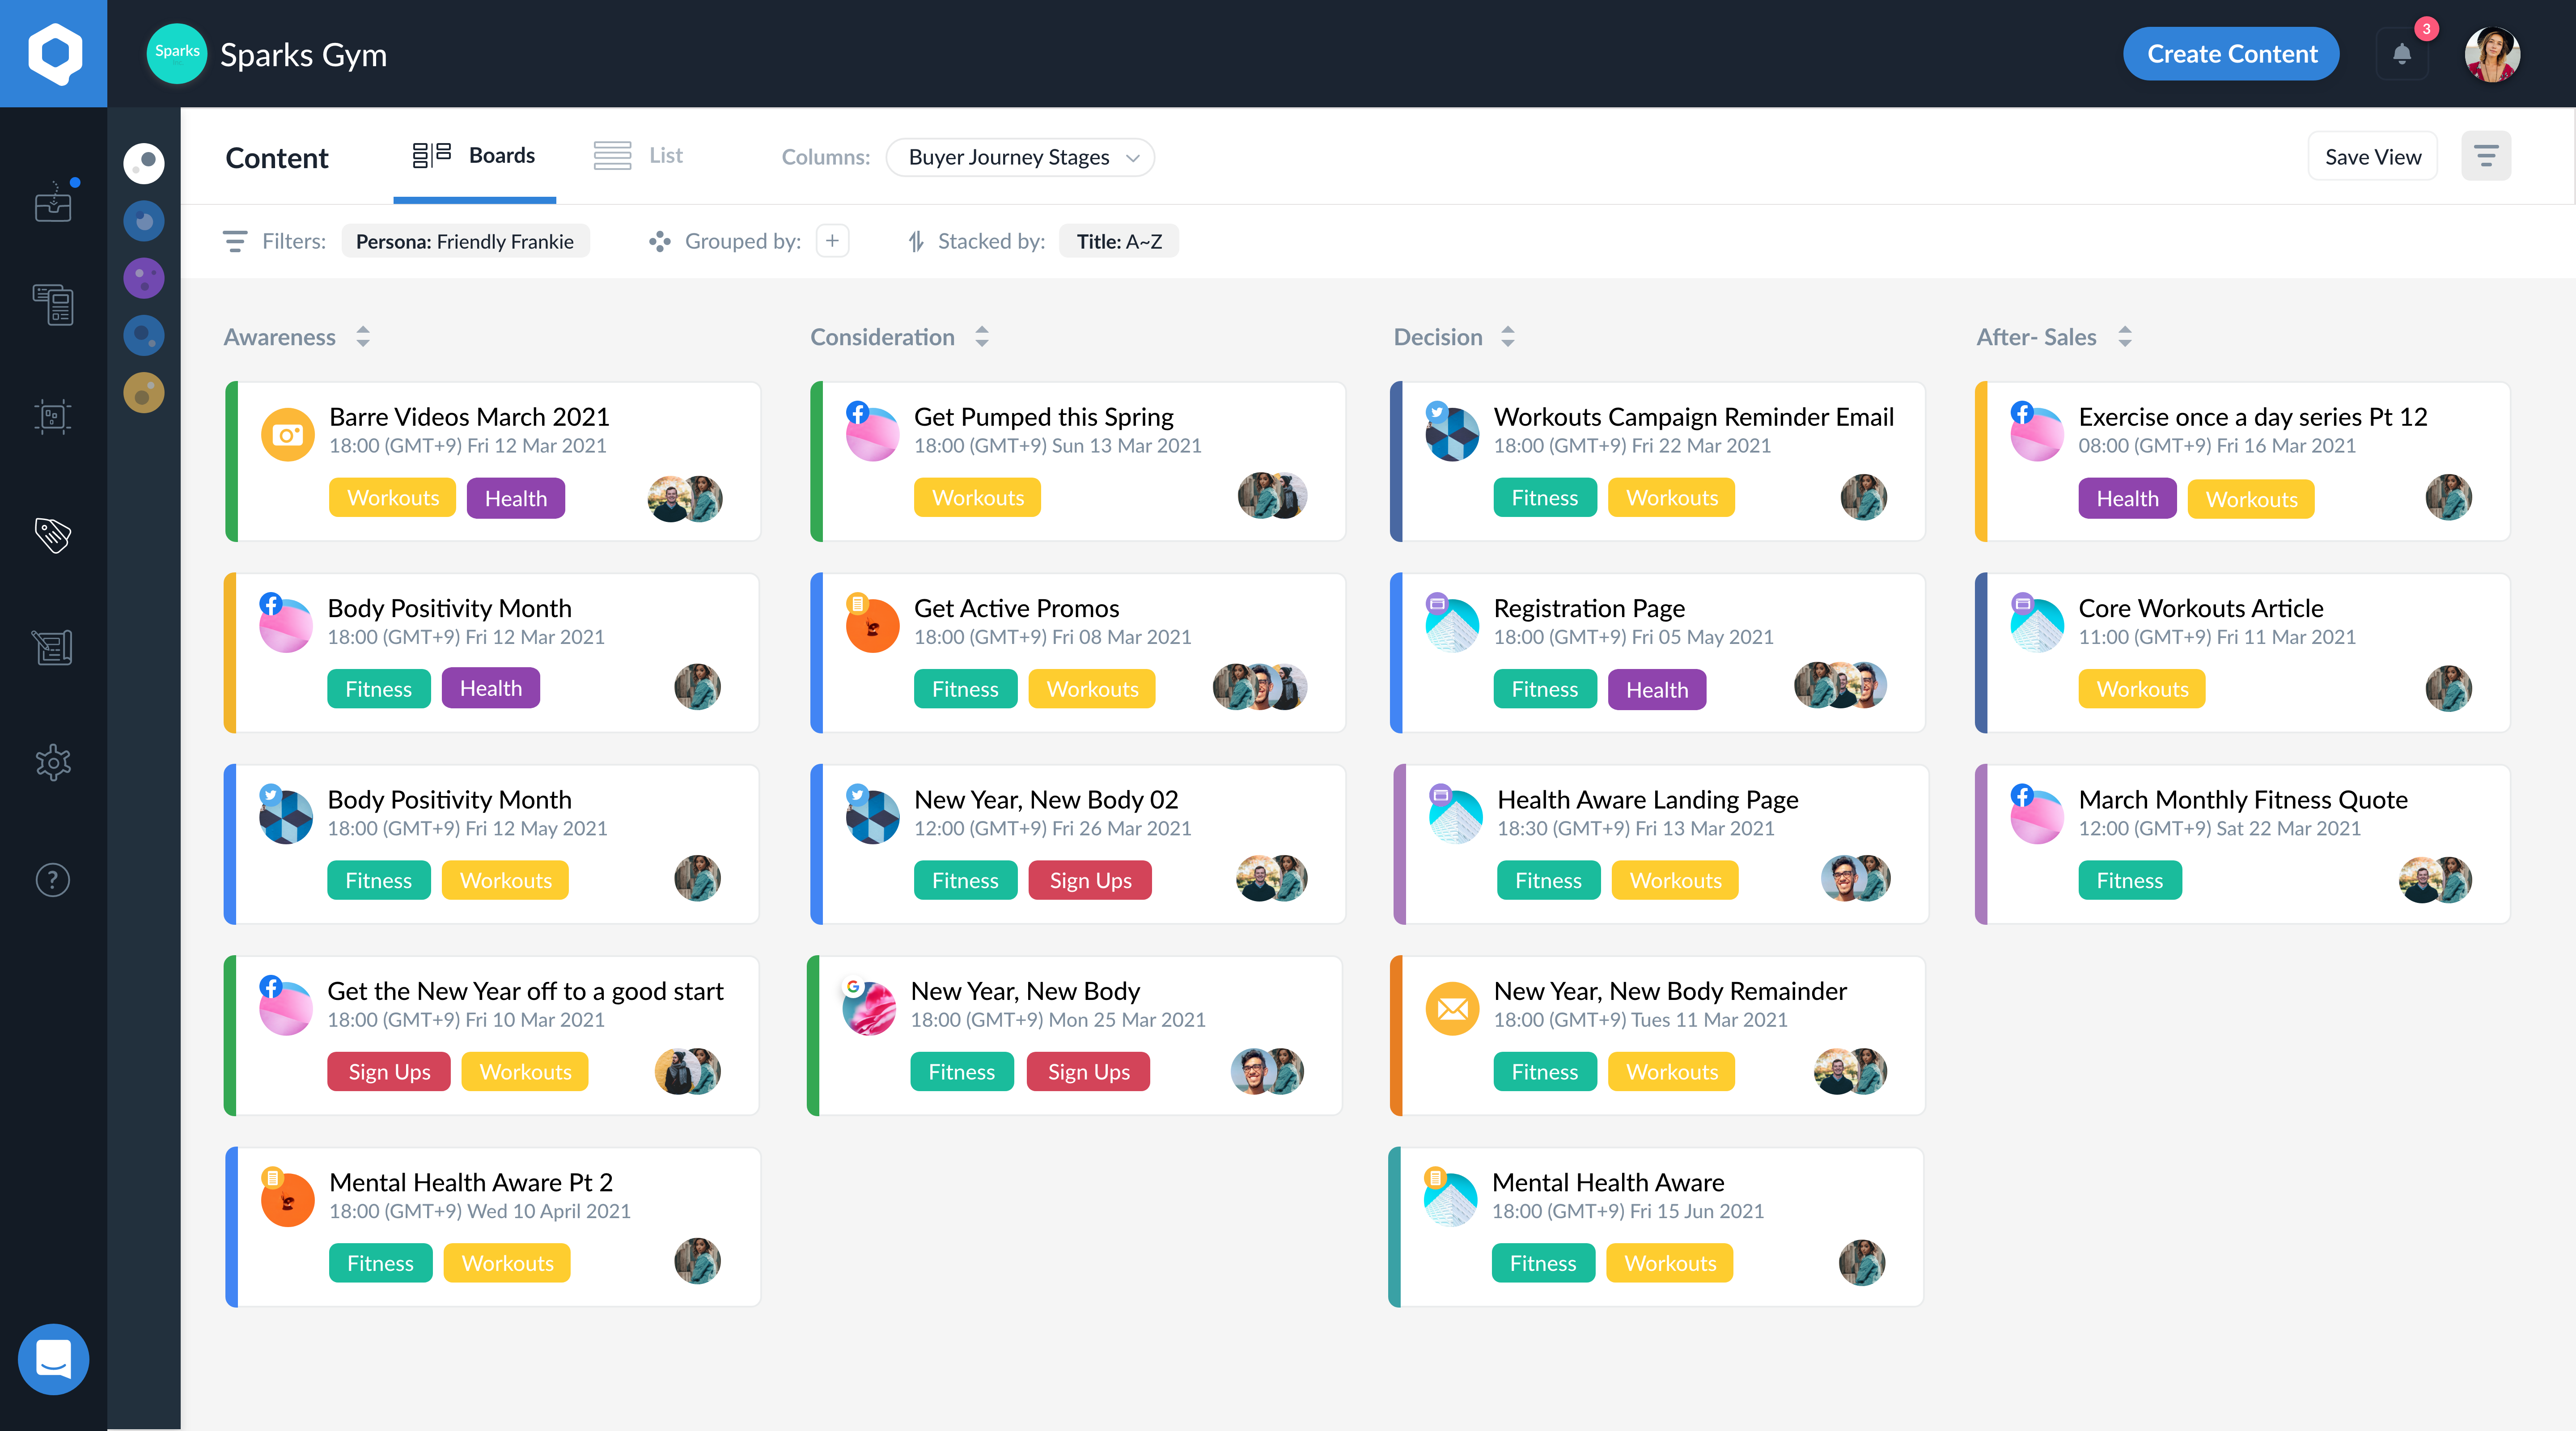 Choose the view that's right for all of you with boards that allow you to discover operational bottlenecks and areas for improvement, and spot content gaps and ideas to help optimize your content strategy